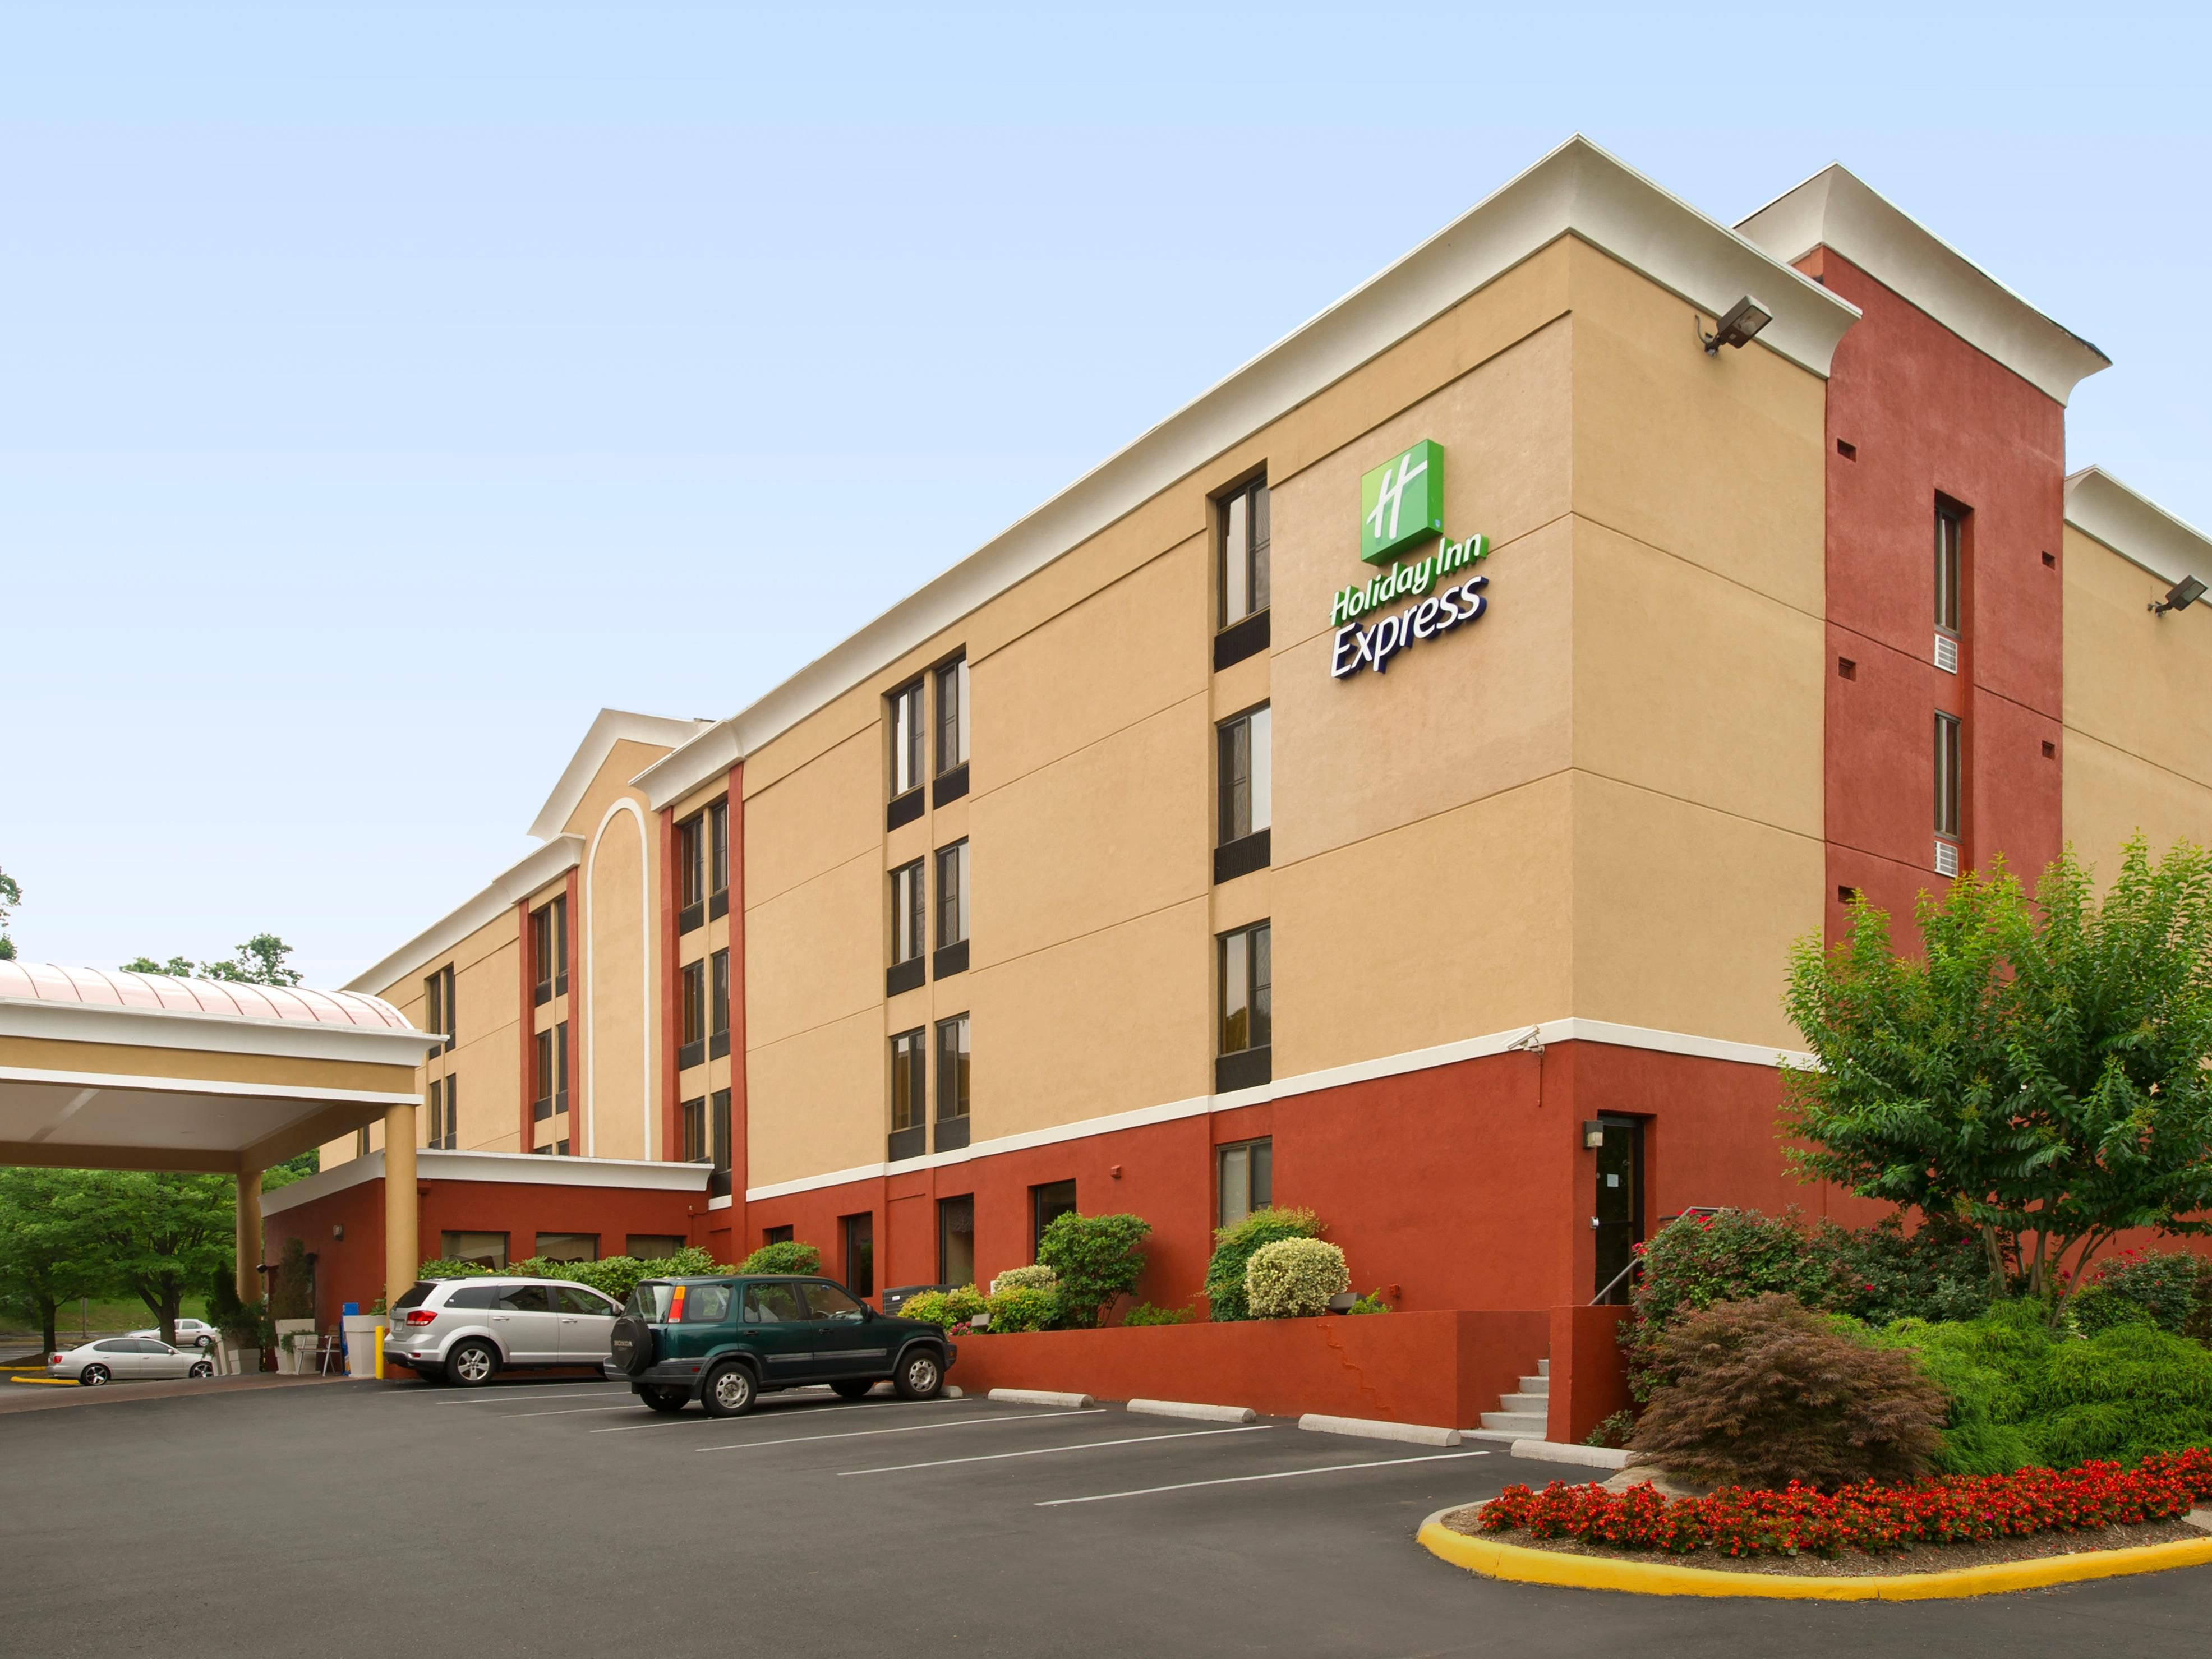 Welcome to the Holiday Inn Express Fairfax!